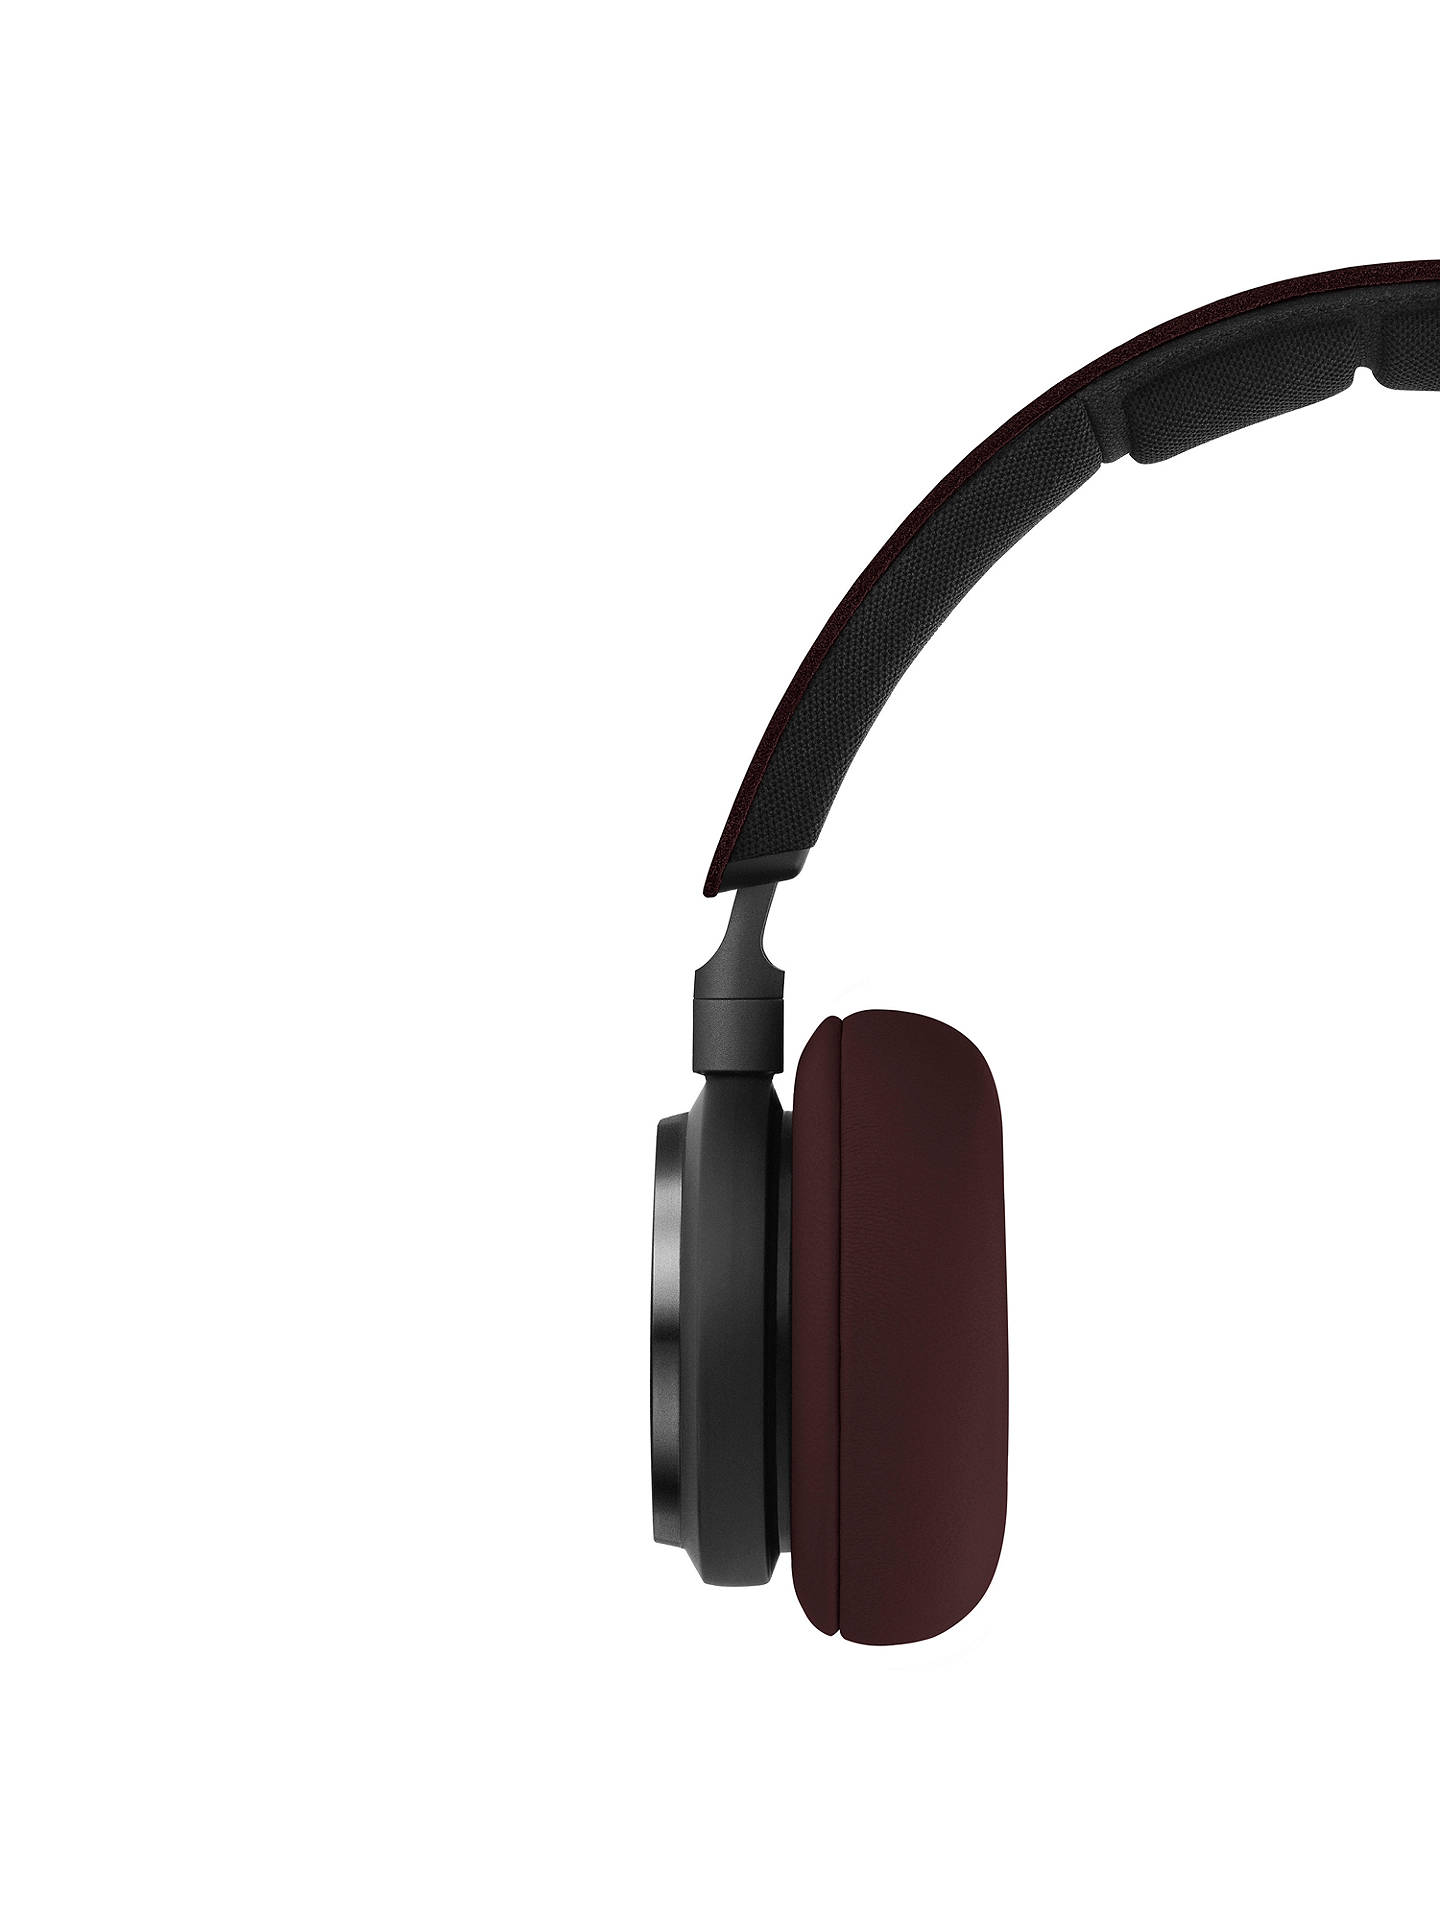 BuyB&O PLAY by Bang & Olufsen Beoplay H8 Wireless Bluetooth Active Noise Cancelling On-Ear Headphones with Intuitive Touch Controls, Deep Red Online at johnlewis.com